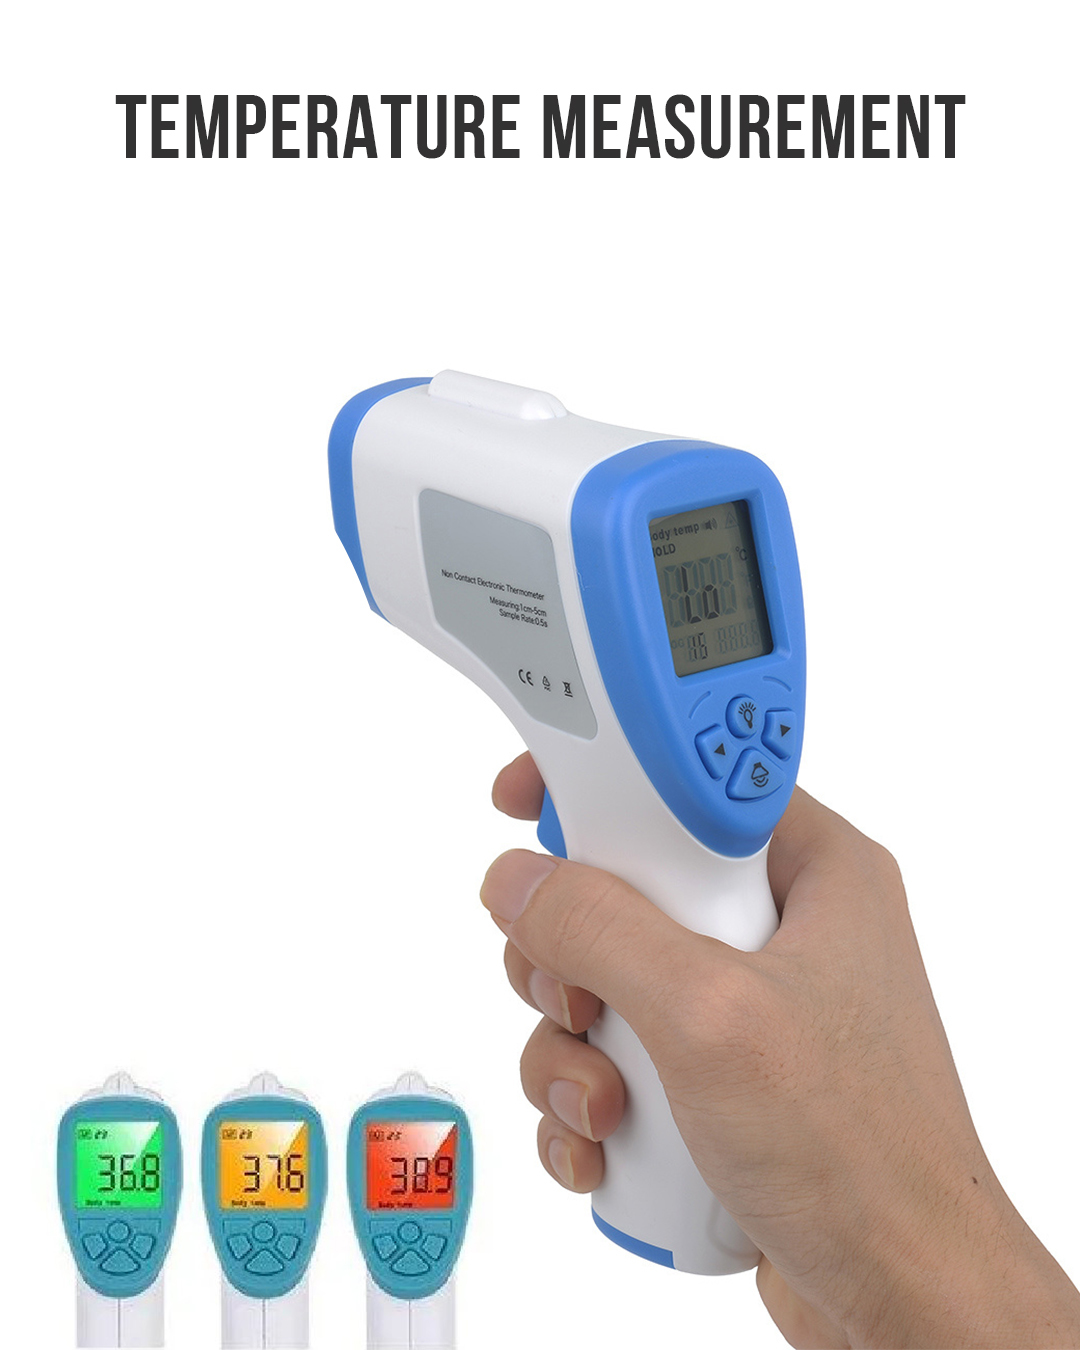 Forehead Thermometer, Non-Contact Instant Reading °F/°C Infrared Digital Thermometer Temperature Measurement Device for Baby Kids and Adults, LED Screen Infrared Thermometer